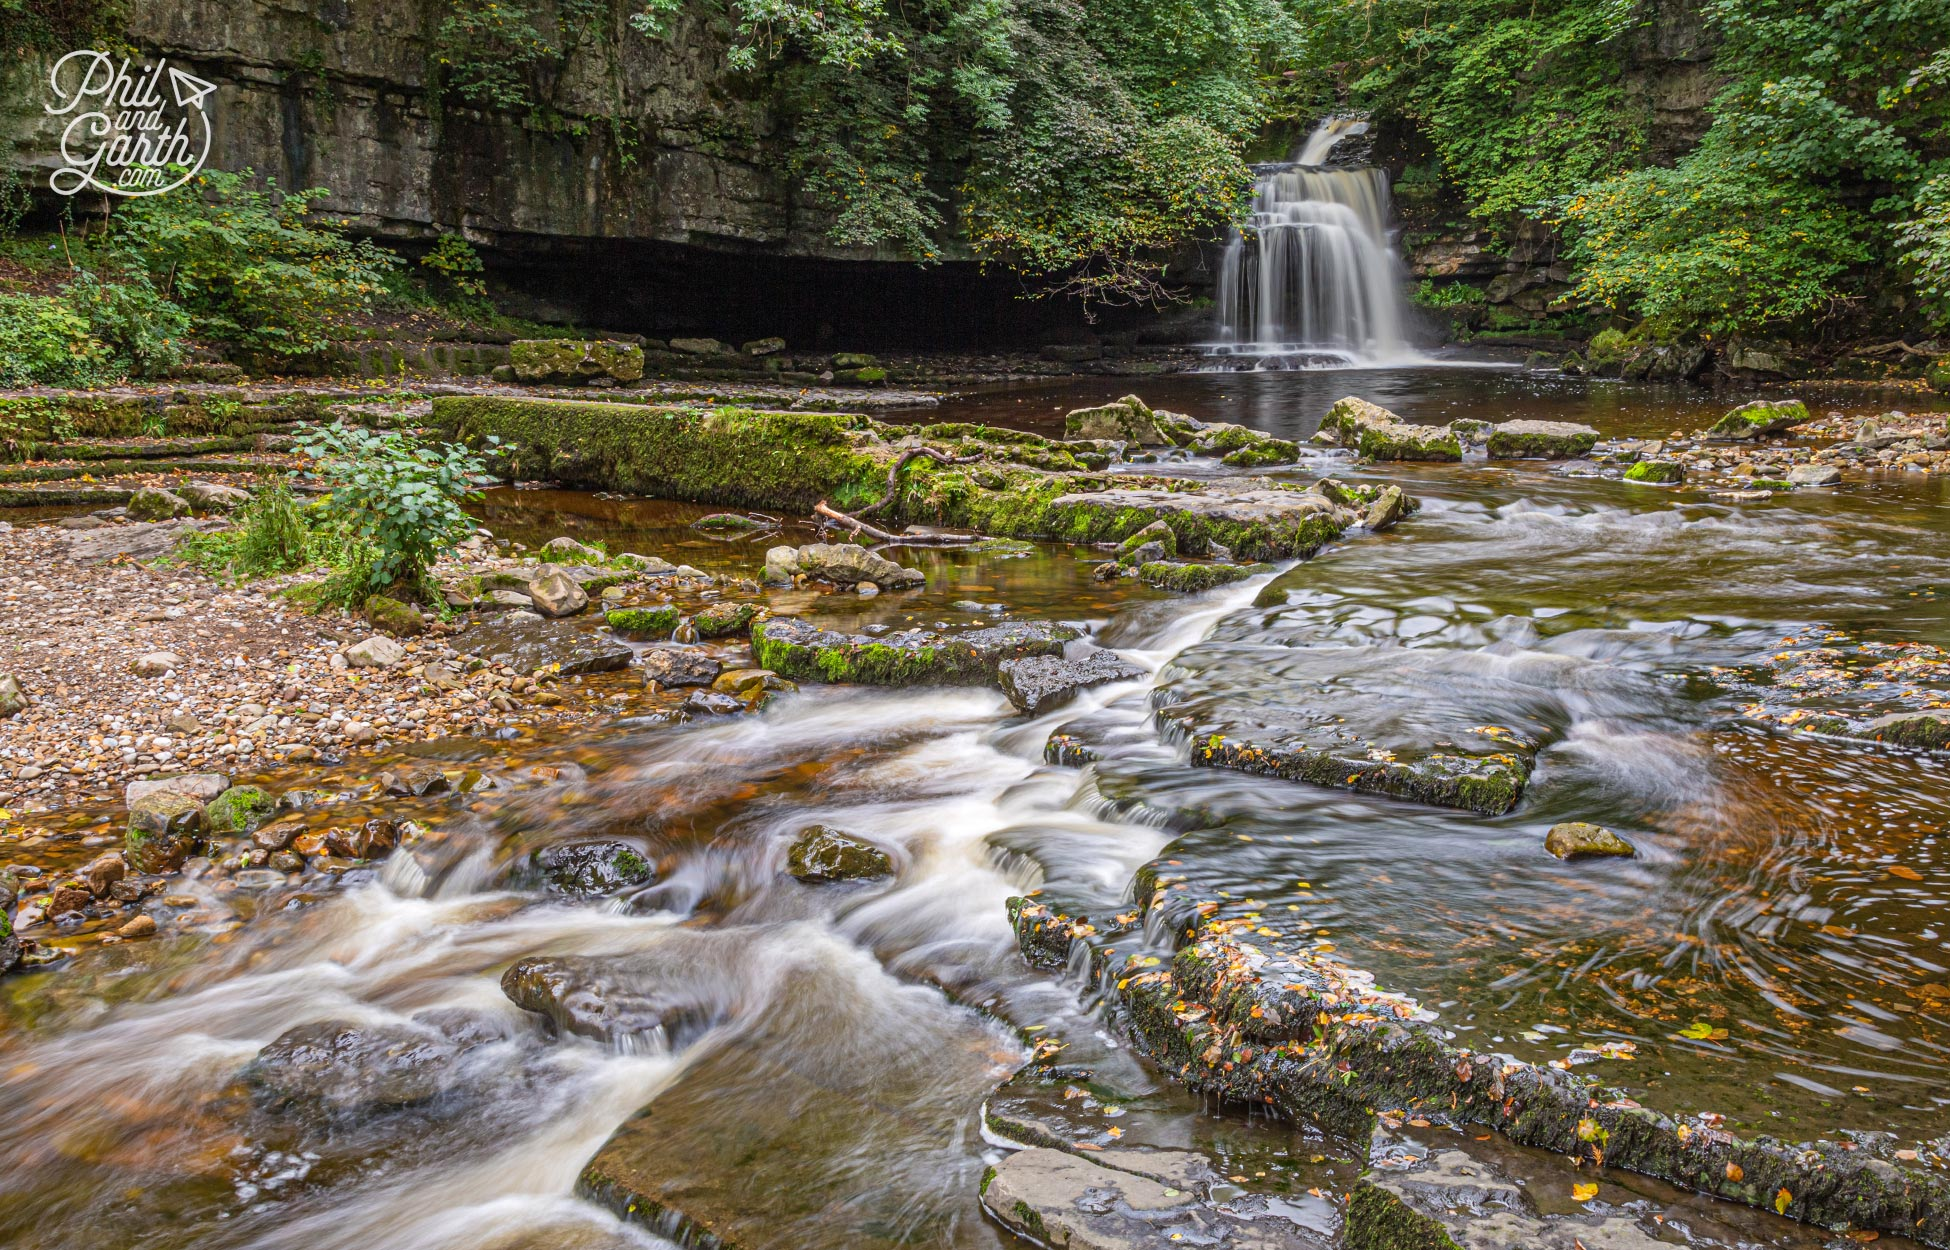 The pretty Cauldron Falls waterfall in West Burton